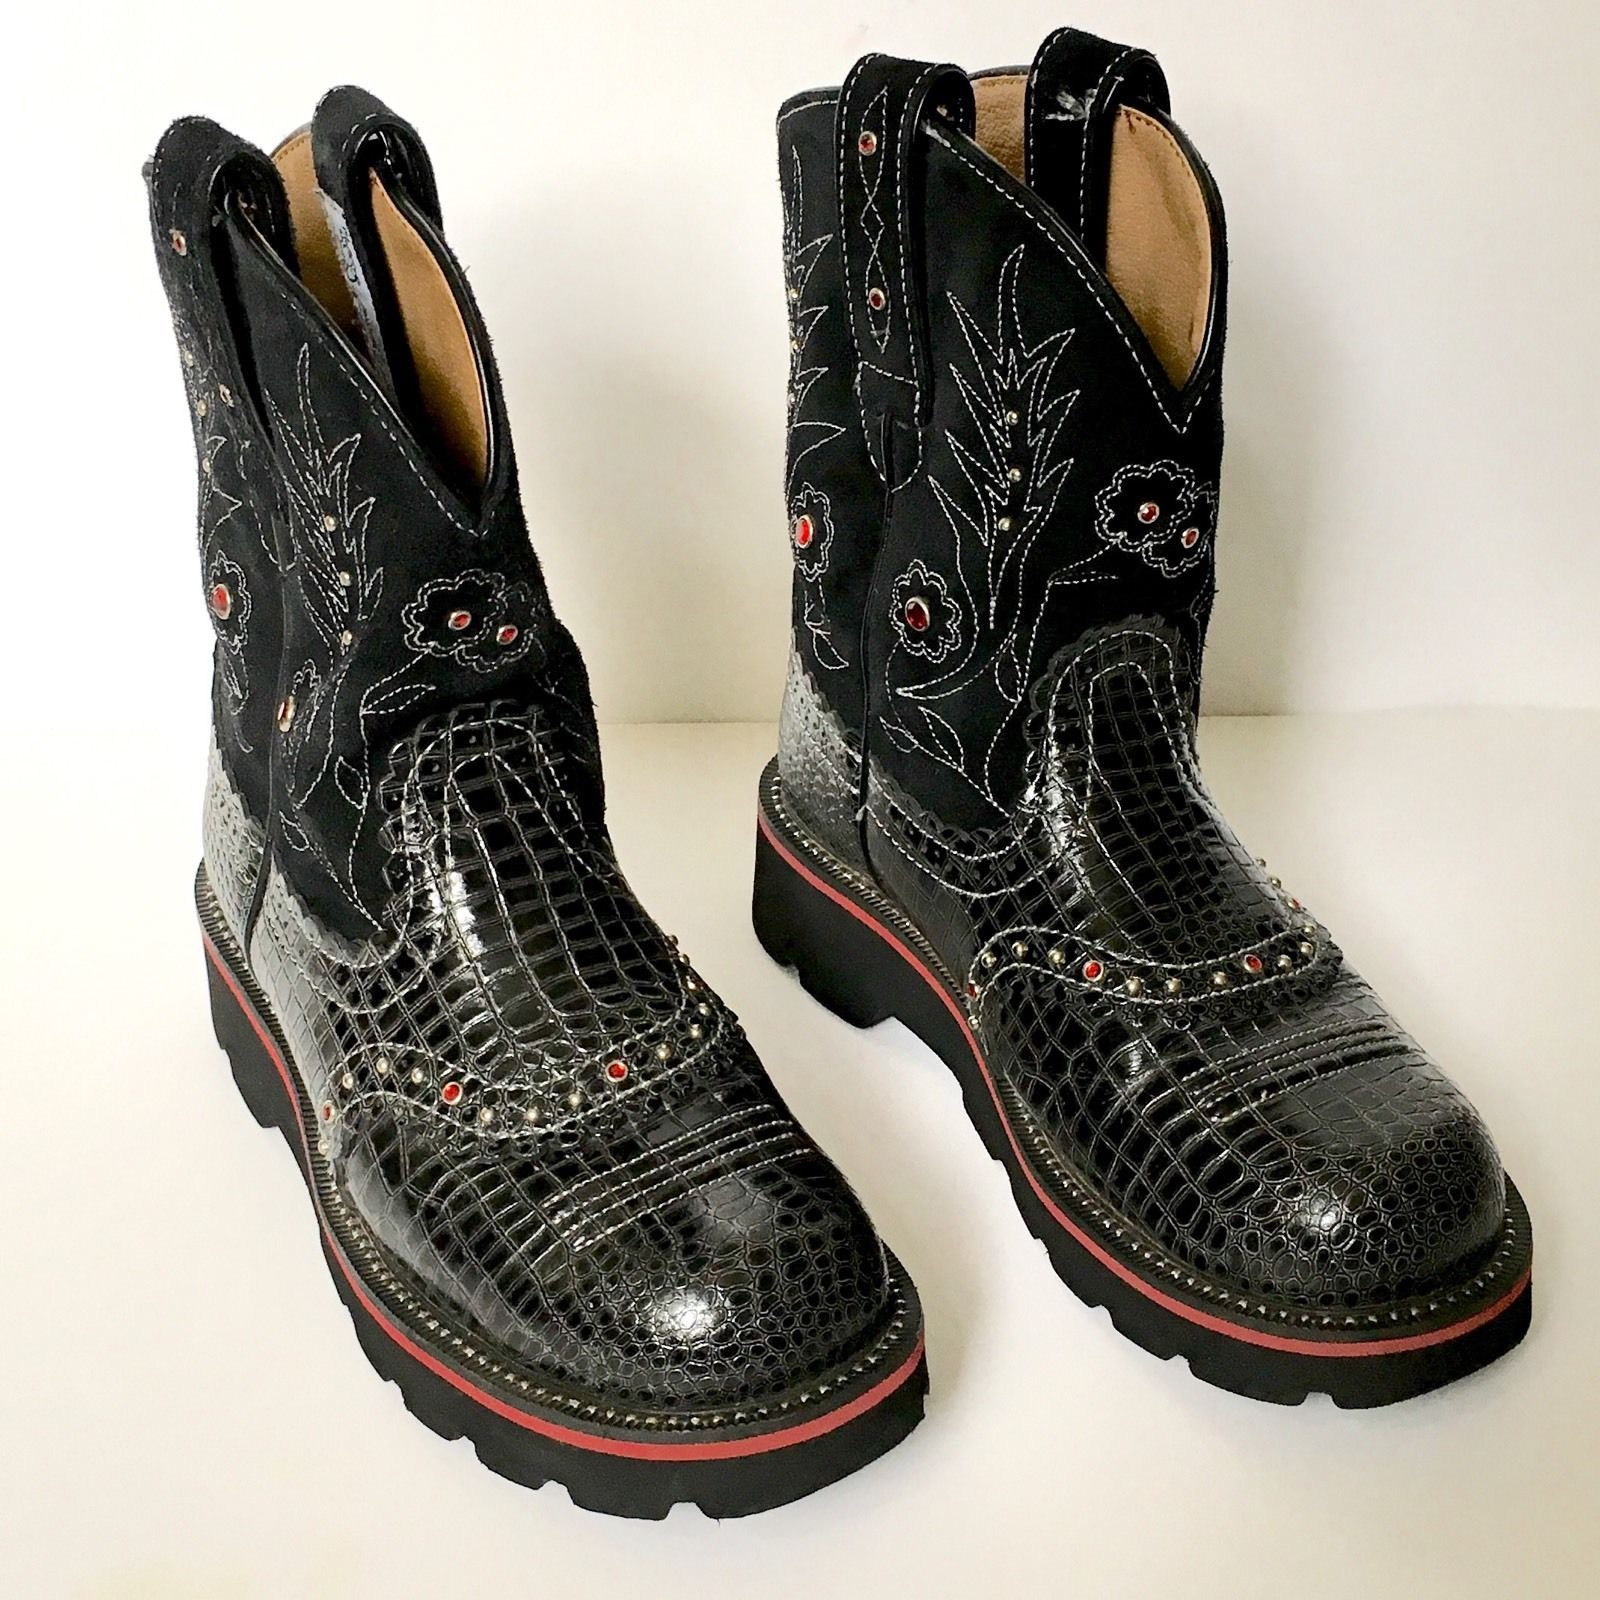 Ariat FatBaby Gem Baby 16405 Black Croc Leather Studded Western Roper Boots 6B